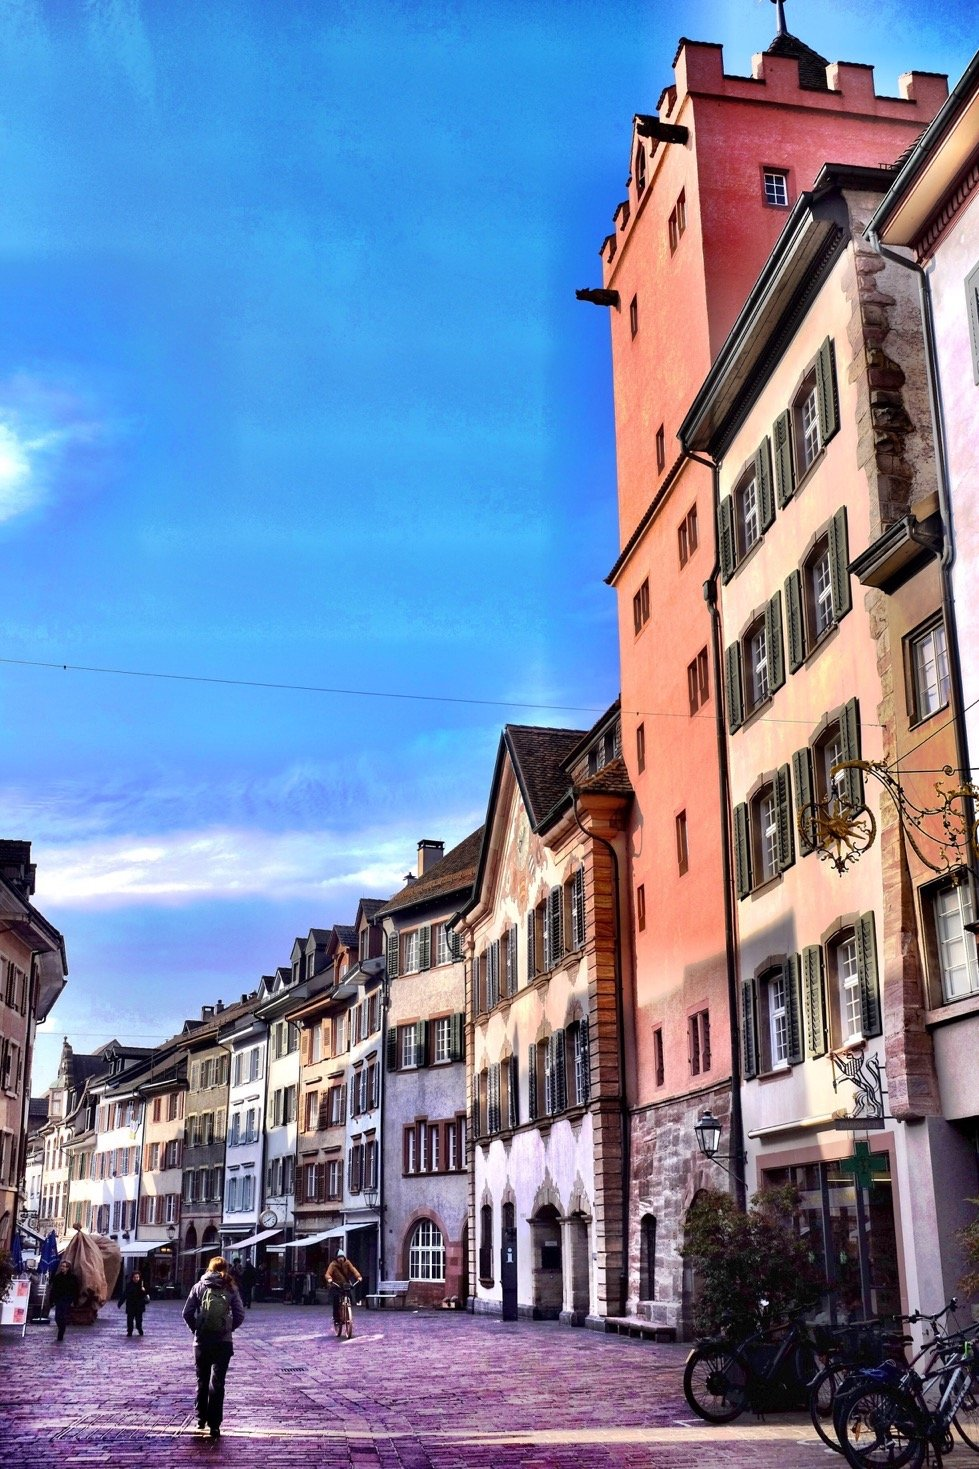 View of the old town in Rheinfelden